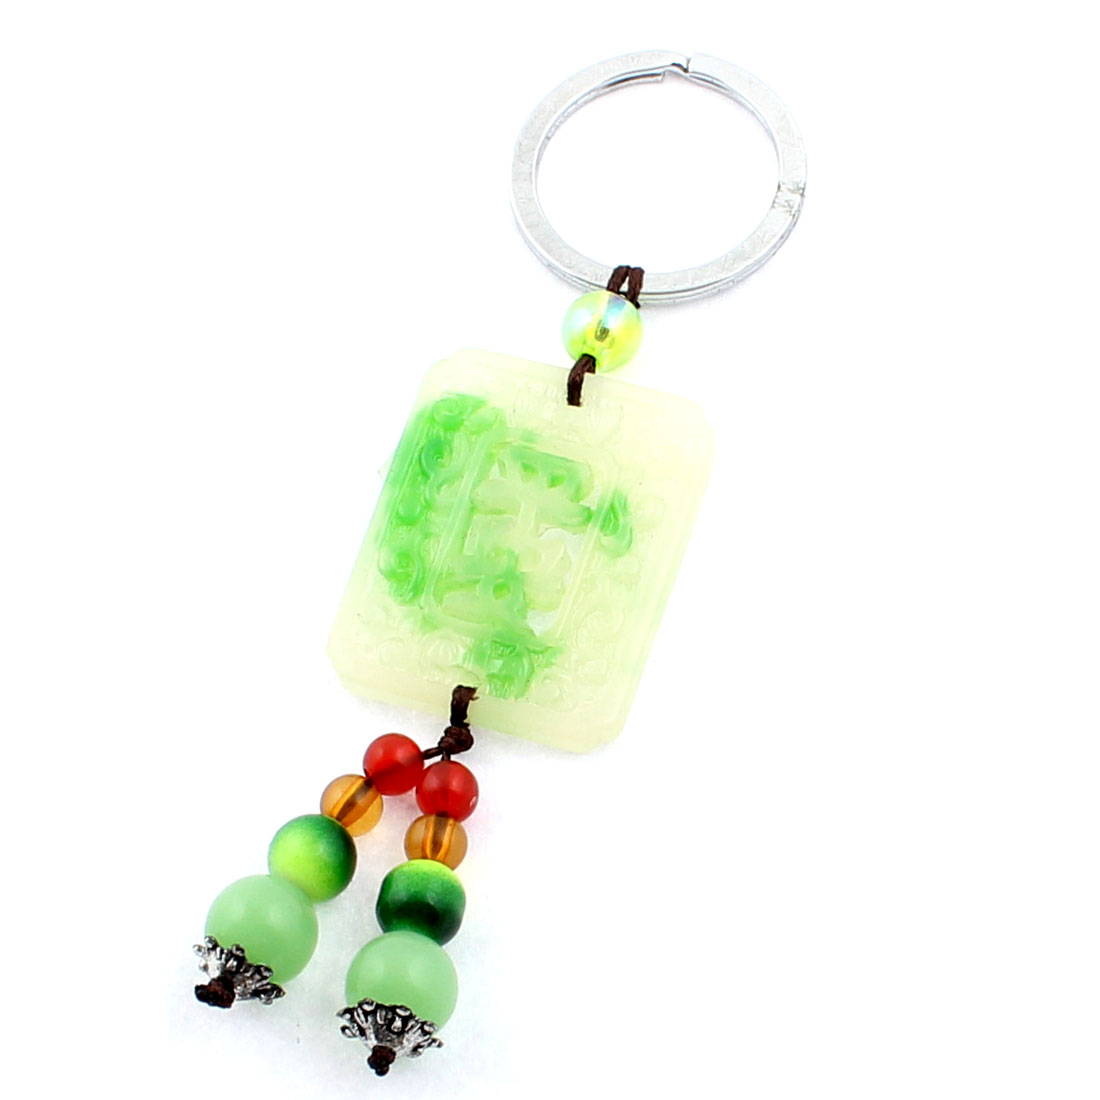 Faux Jade Rectangle Shaped Pendant Split Ring Keychain Keyring Key Holder Green